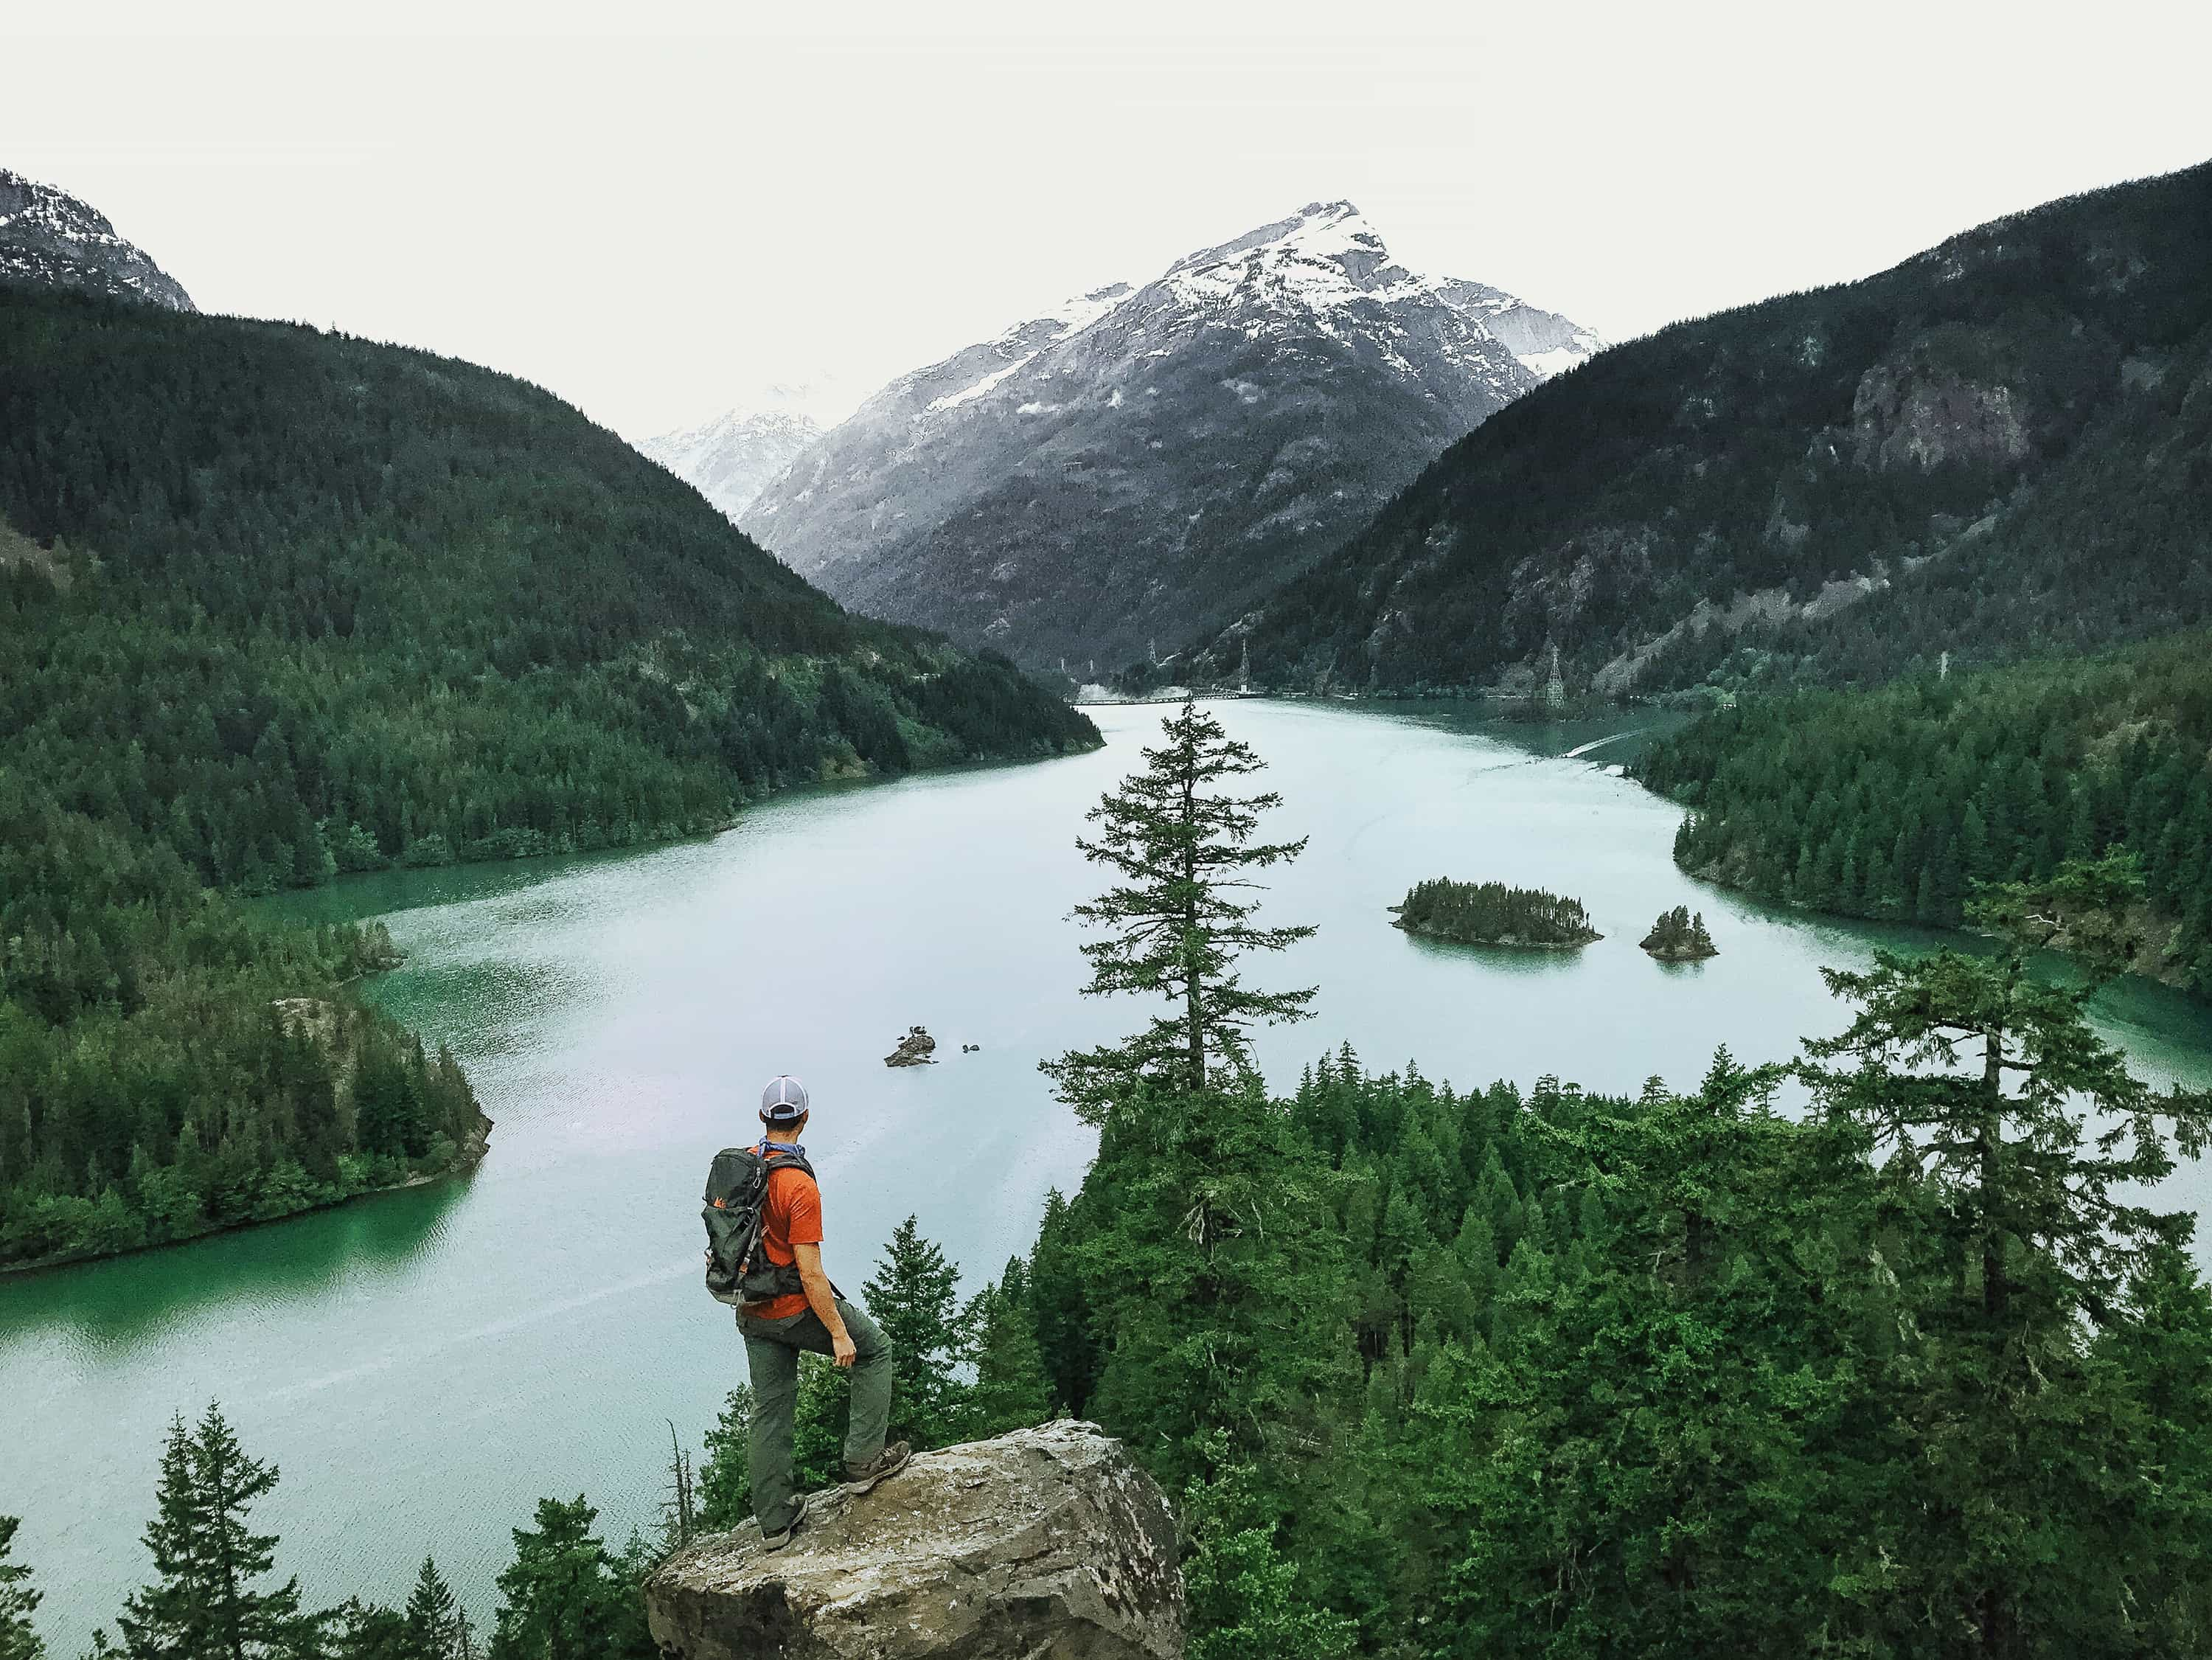 Diablo Lake in North Cascades National Park shot by Kevin Lu on iPhone 7 Plus.